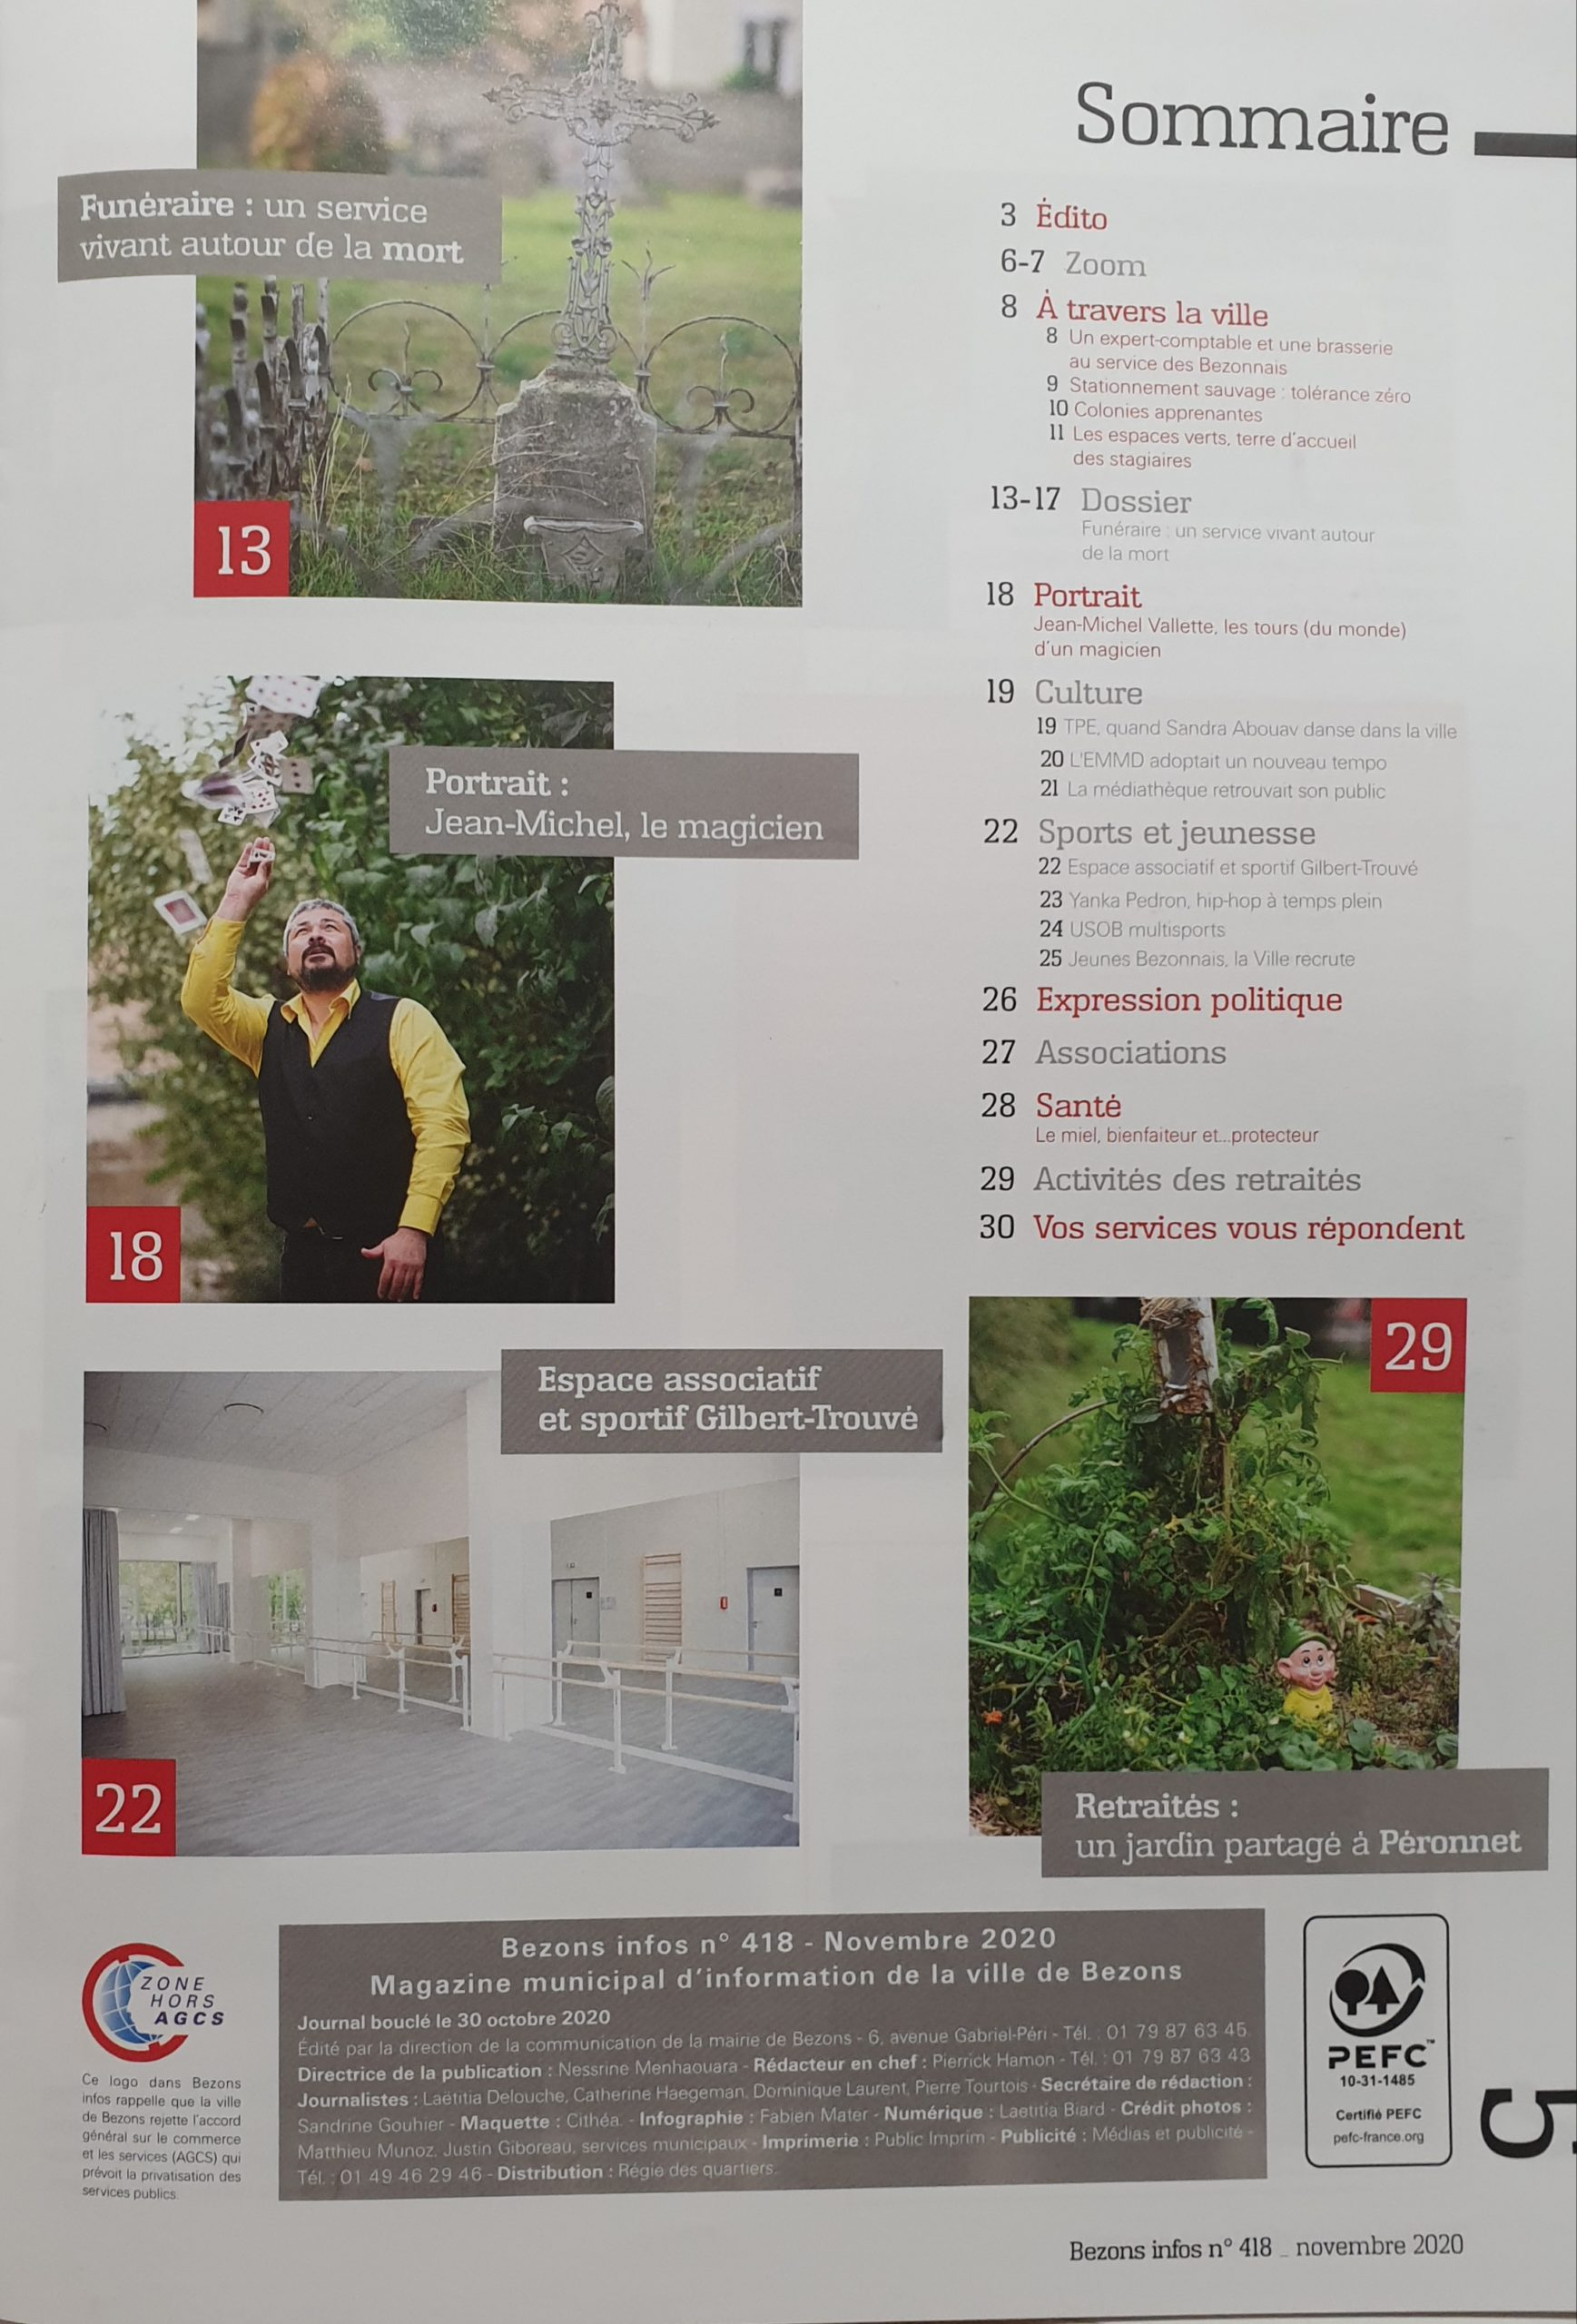 Sommaire Bezons info N°418